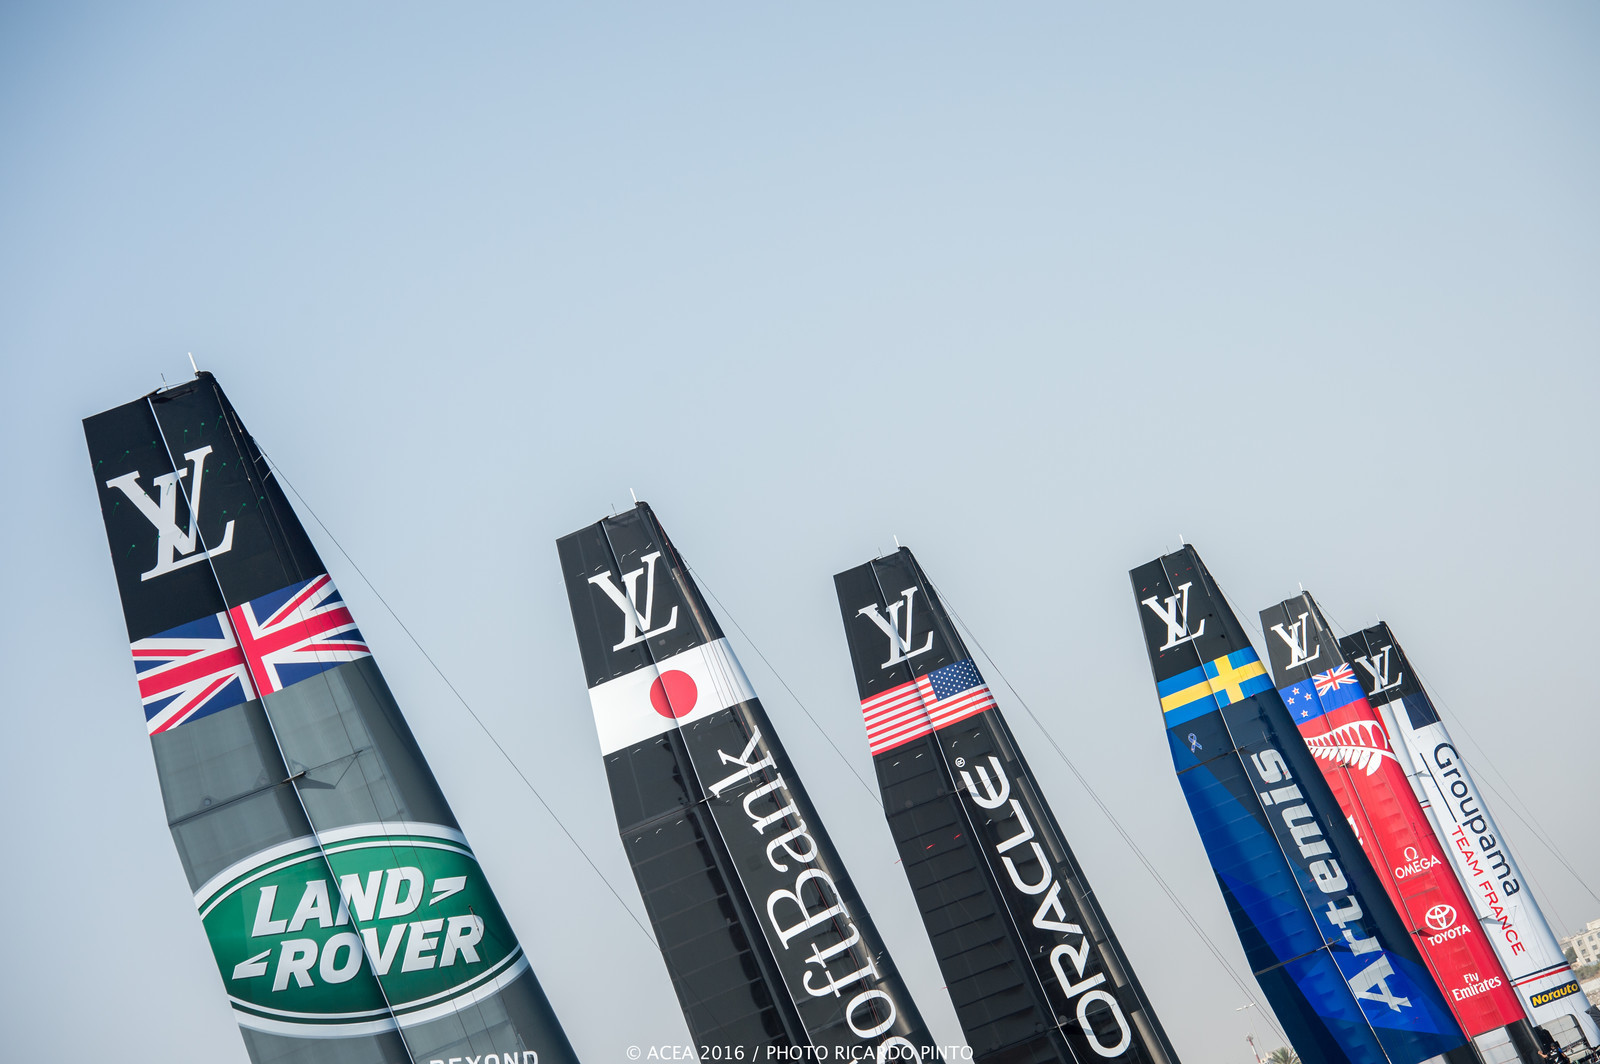 Muscat (OMN) - 35th America's Cup Bermuda 2017 - Louis Vuitton America's Cup World Series Oman - Practice Day